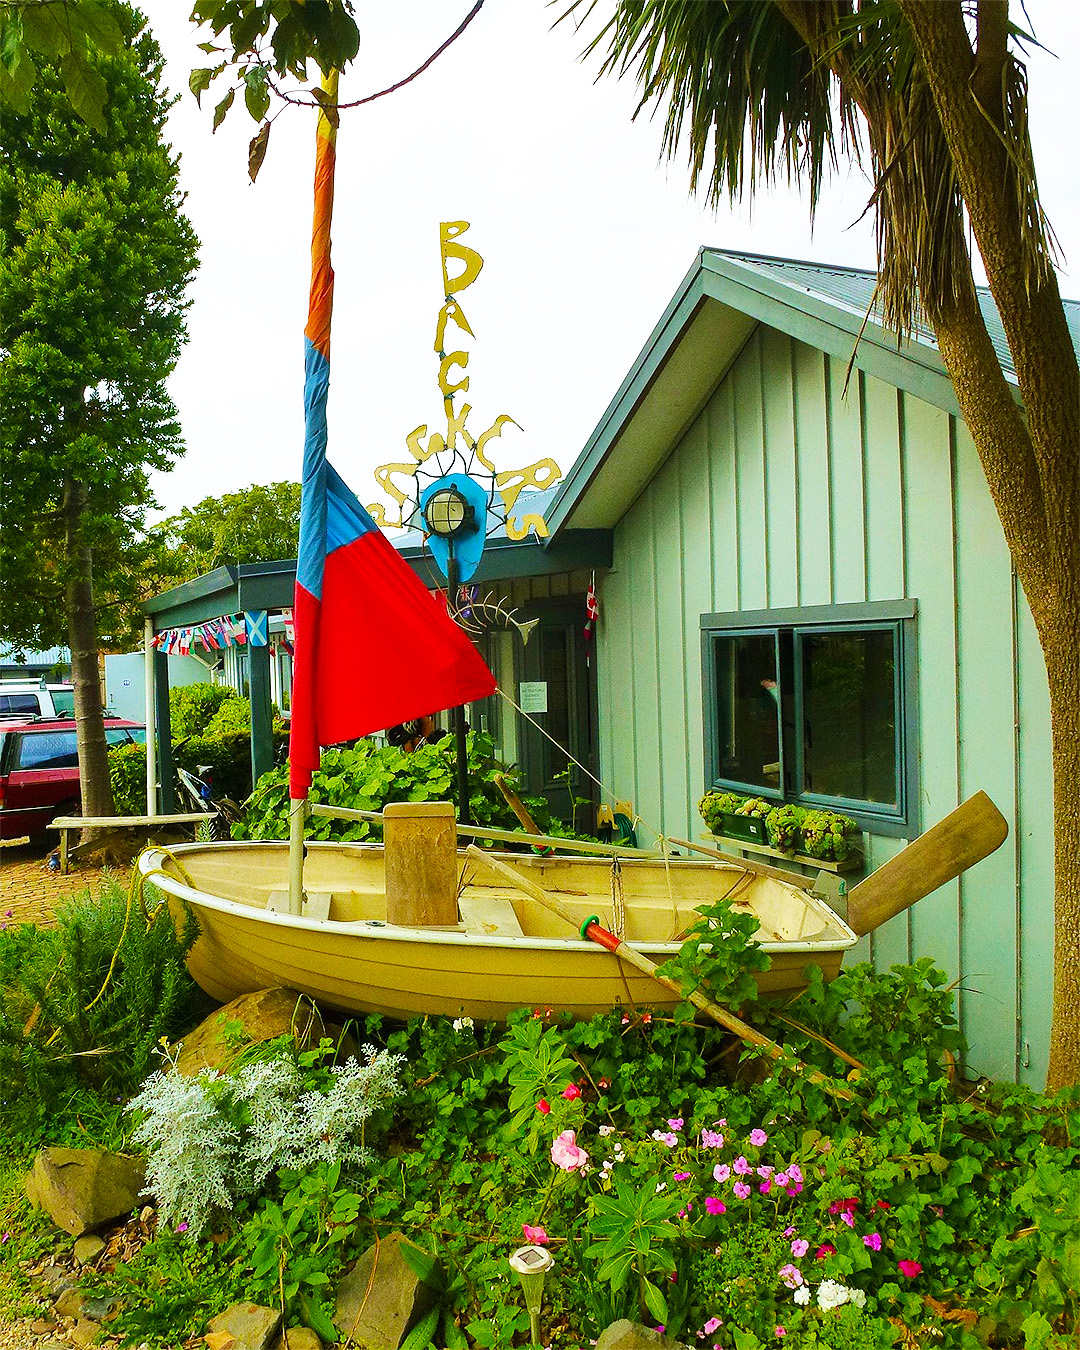 The outside boat at Raglan backpackers.